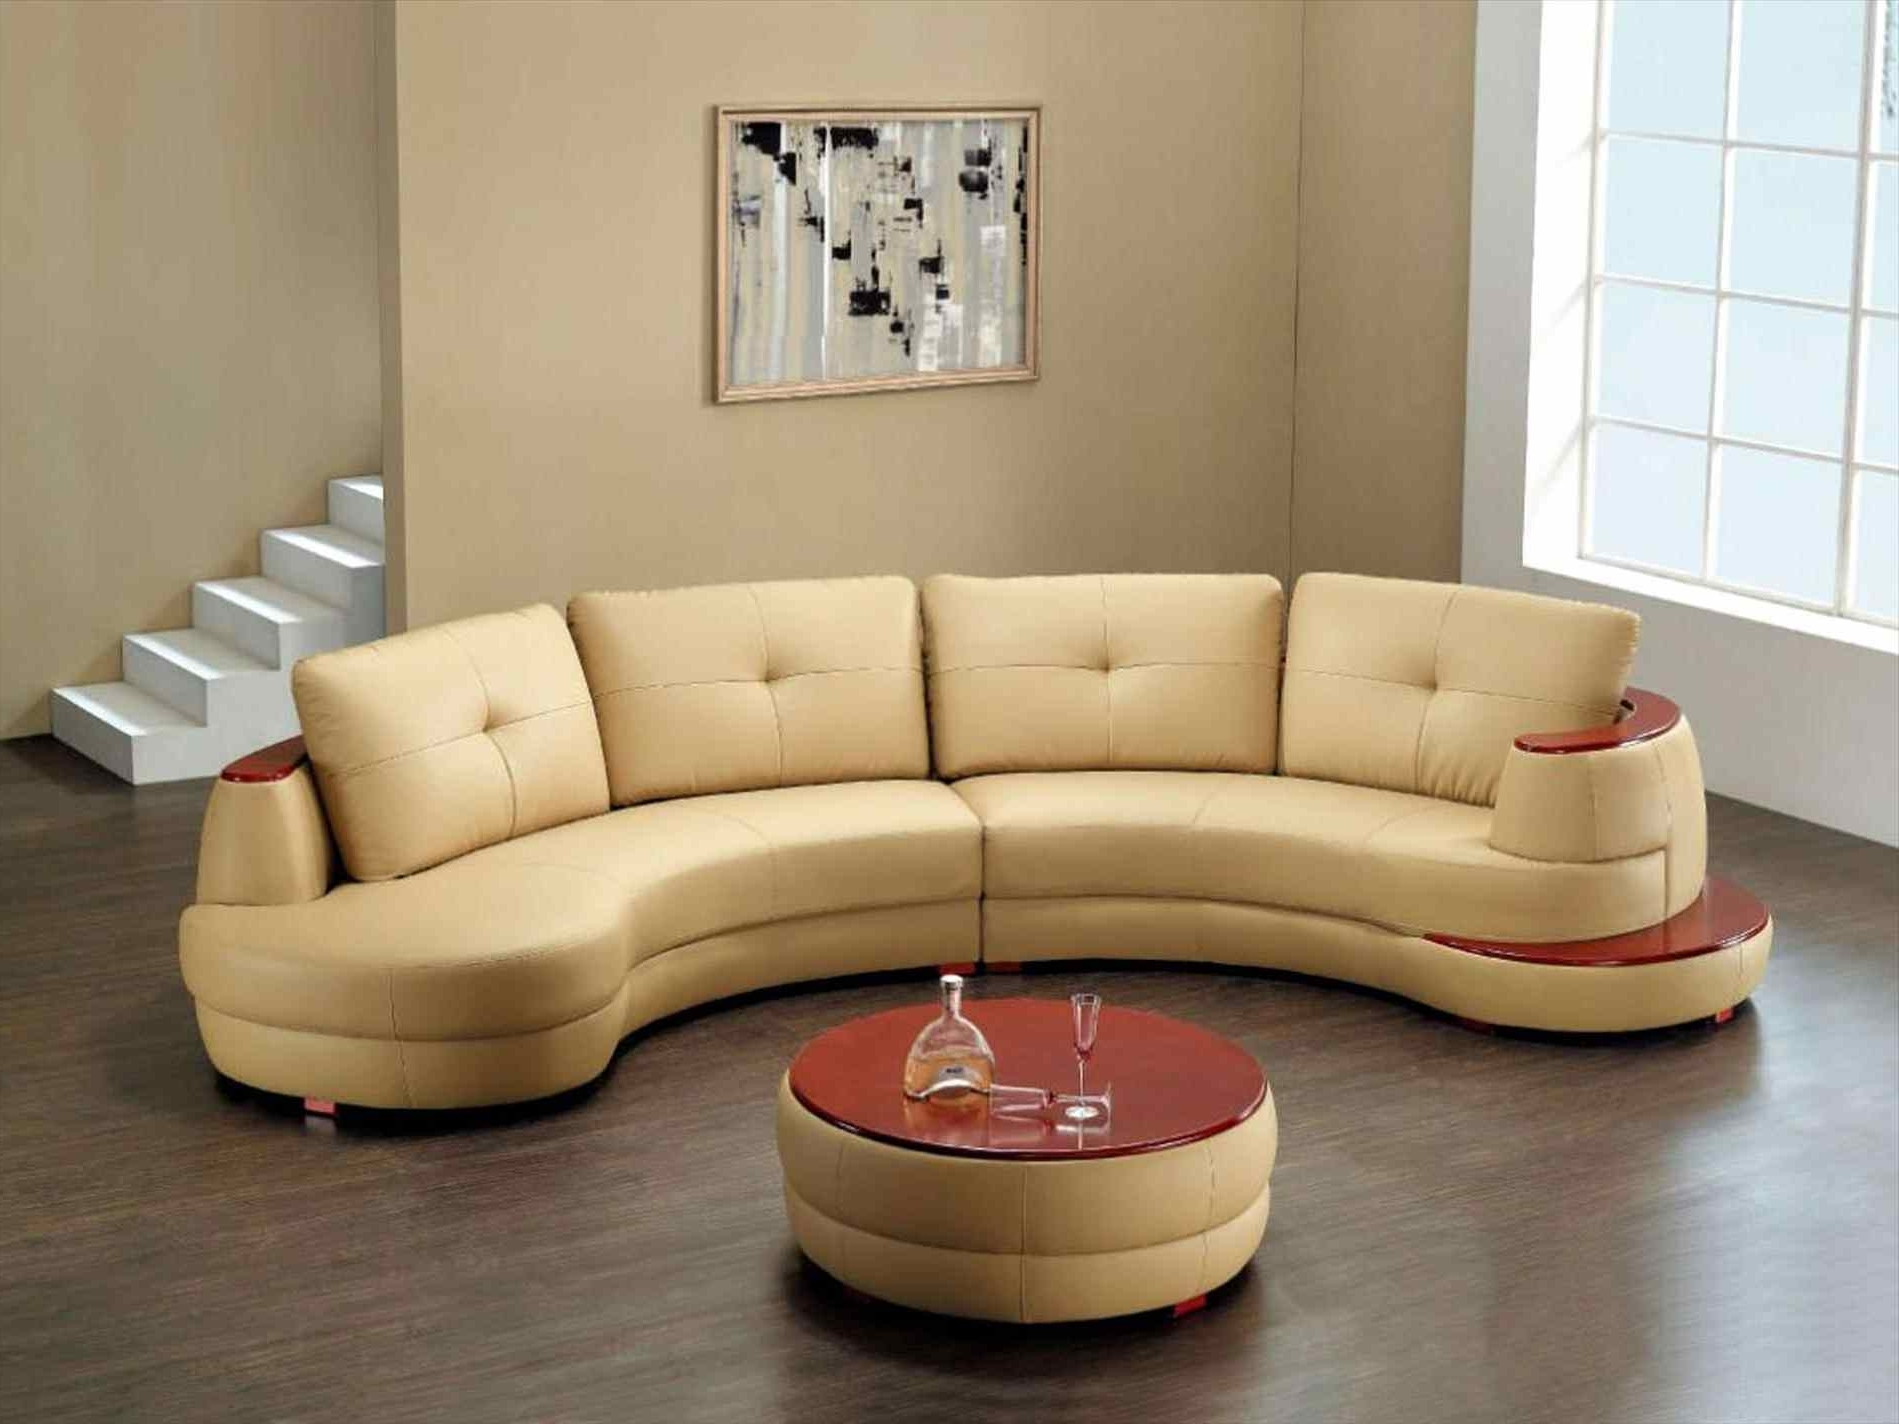 Preferred Customized Sofas Regarding Couch : Uae Call Settees Sofa Small Circle Couch Customized Sofas (View 10 of 15)